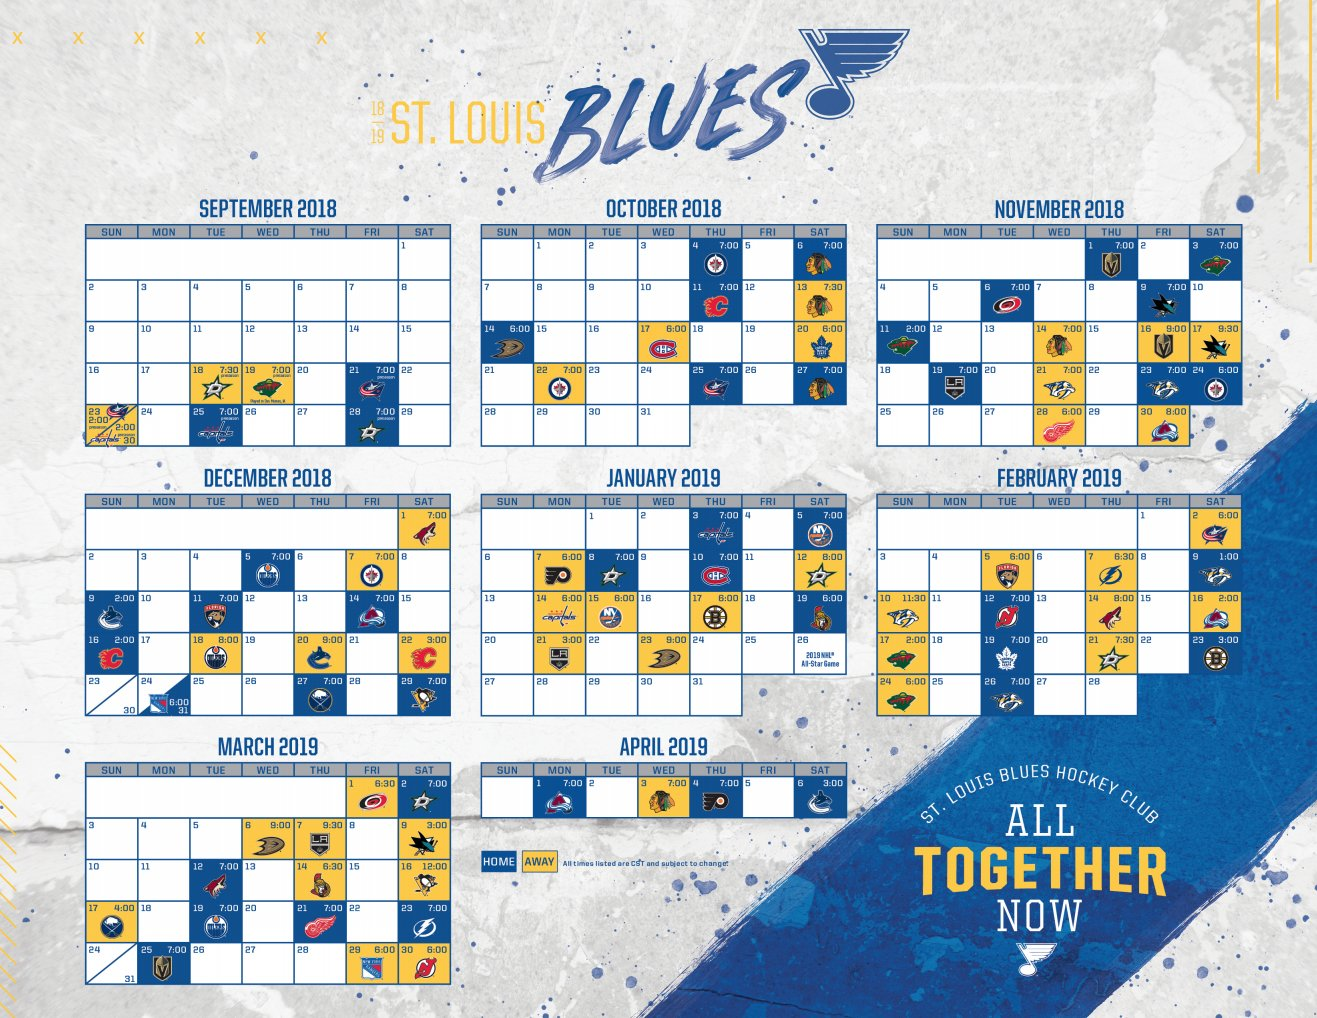 Universal image with regard to st louis blues printable schedule